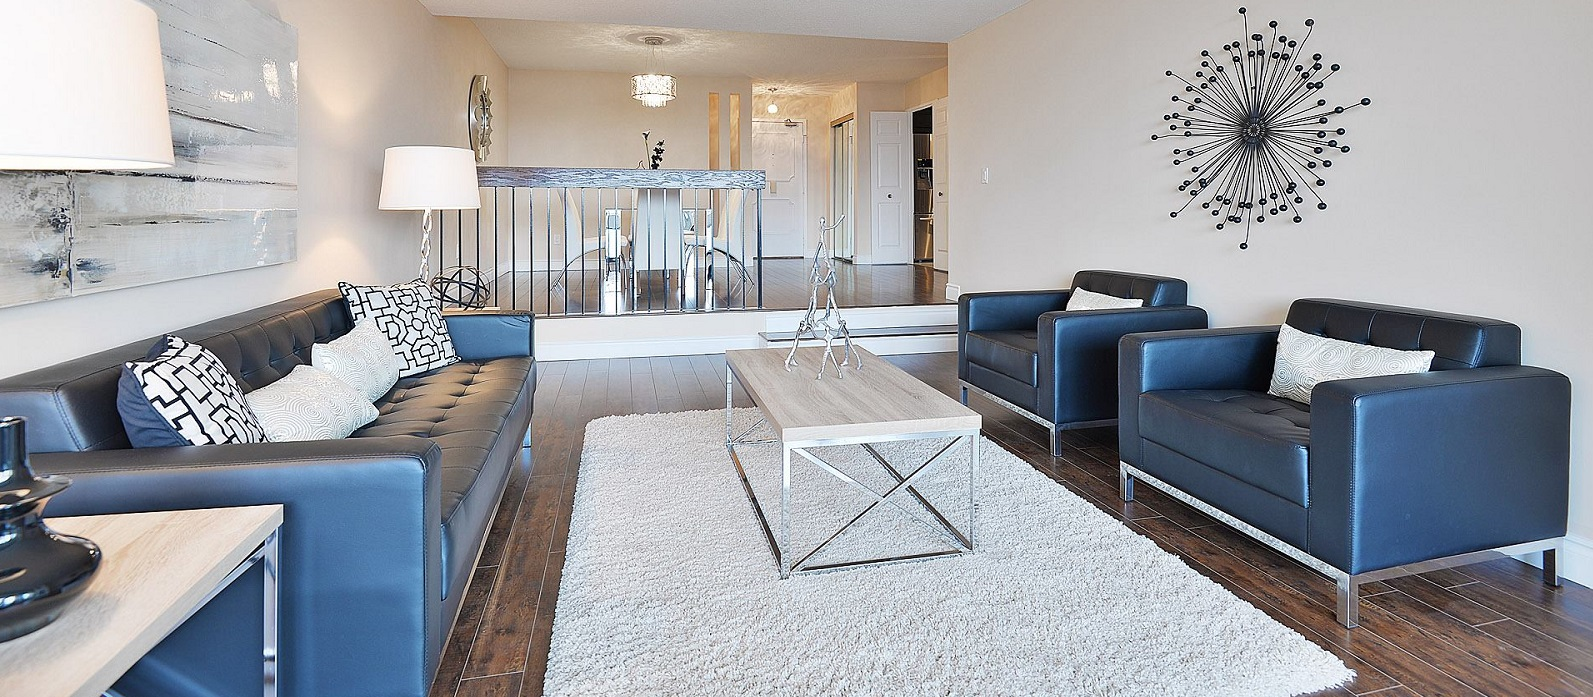 Toronto Home Staging Services And Furniture Rental Toronto